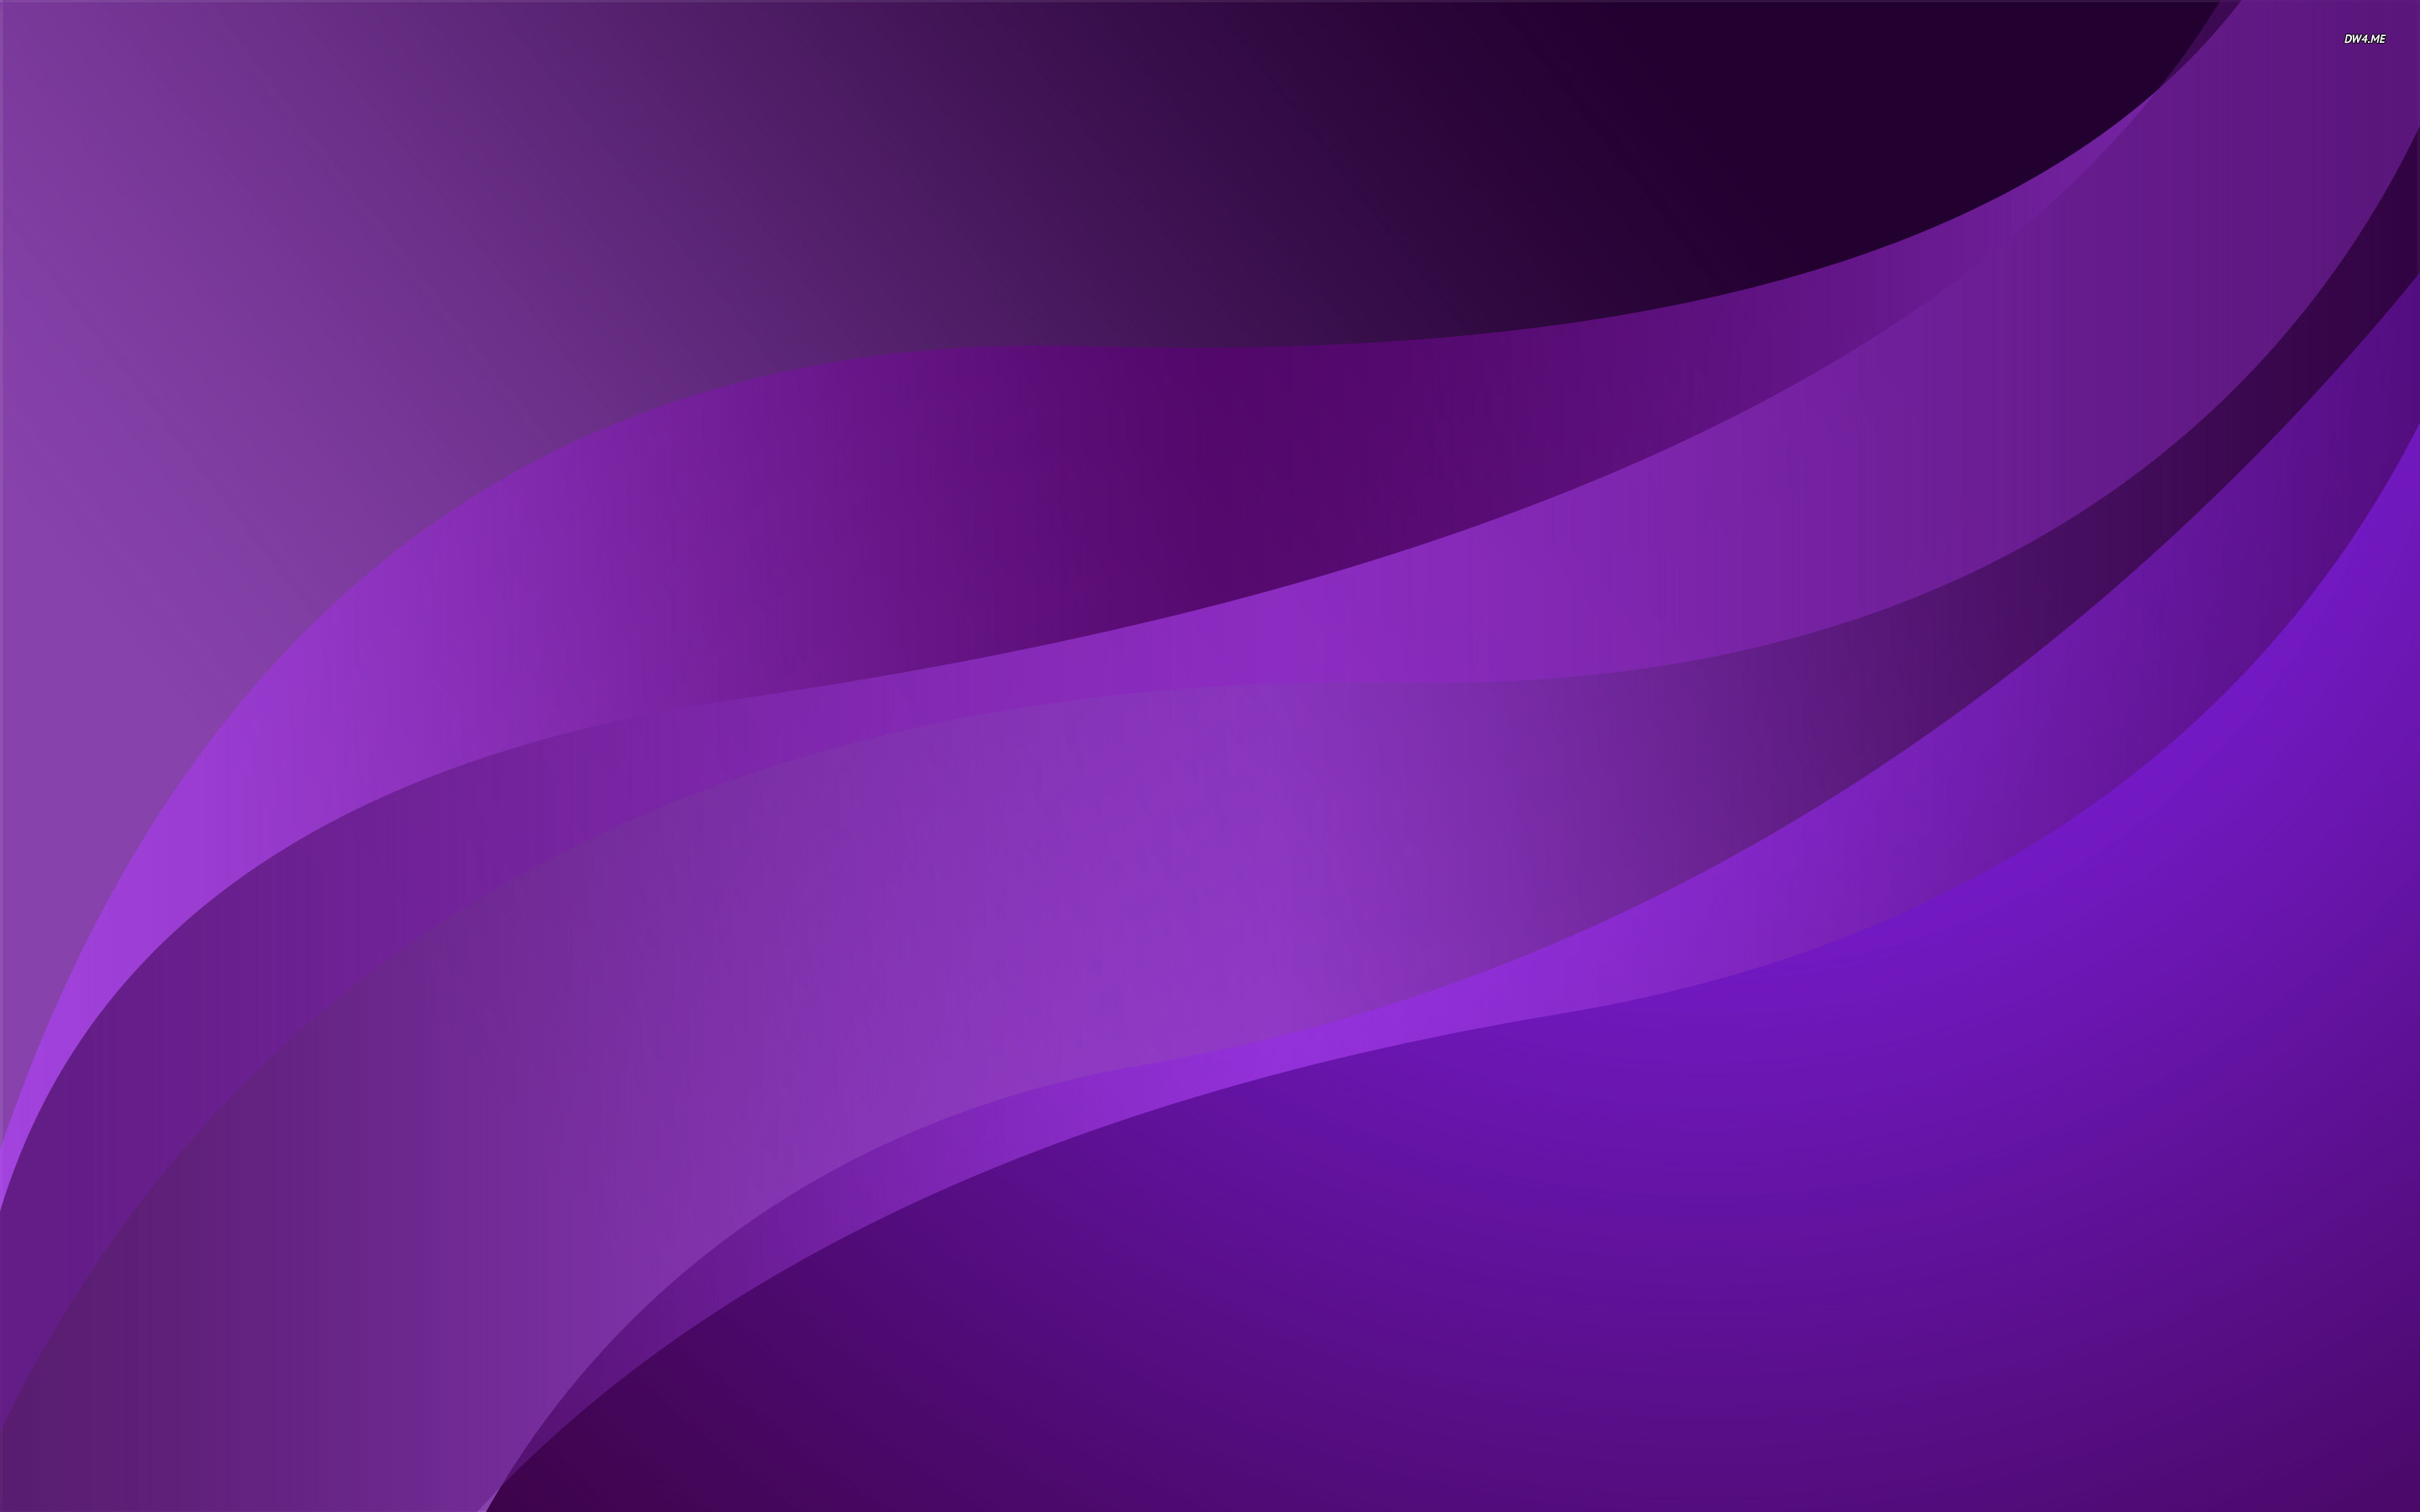 Purple curves wallpaper   Abstract wallpapers   2162 2880x1800